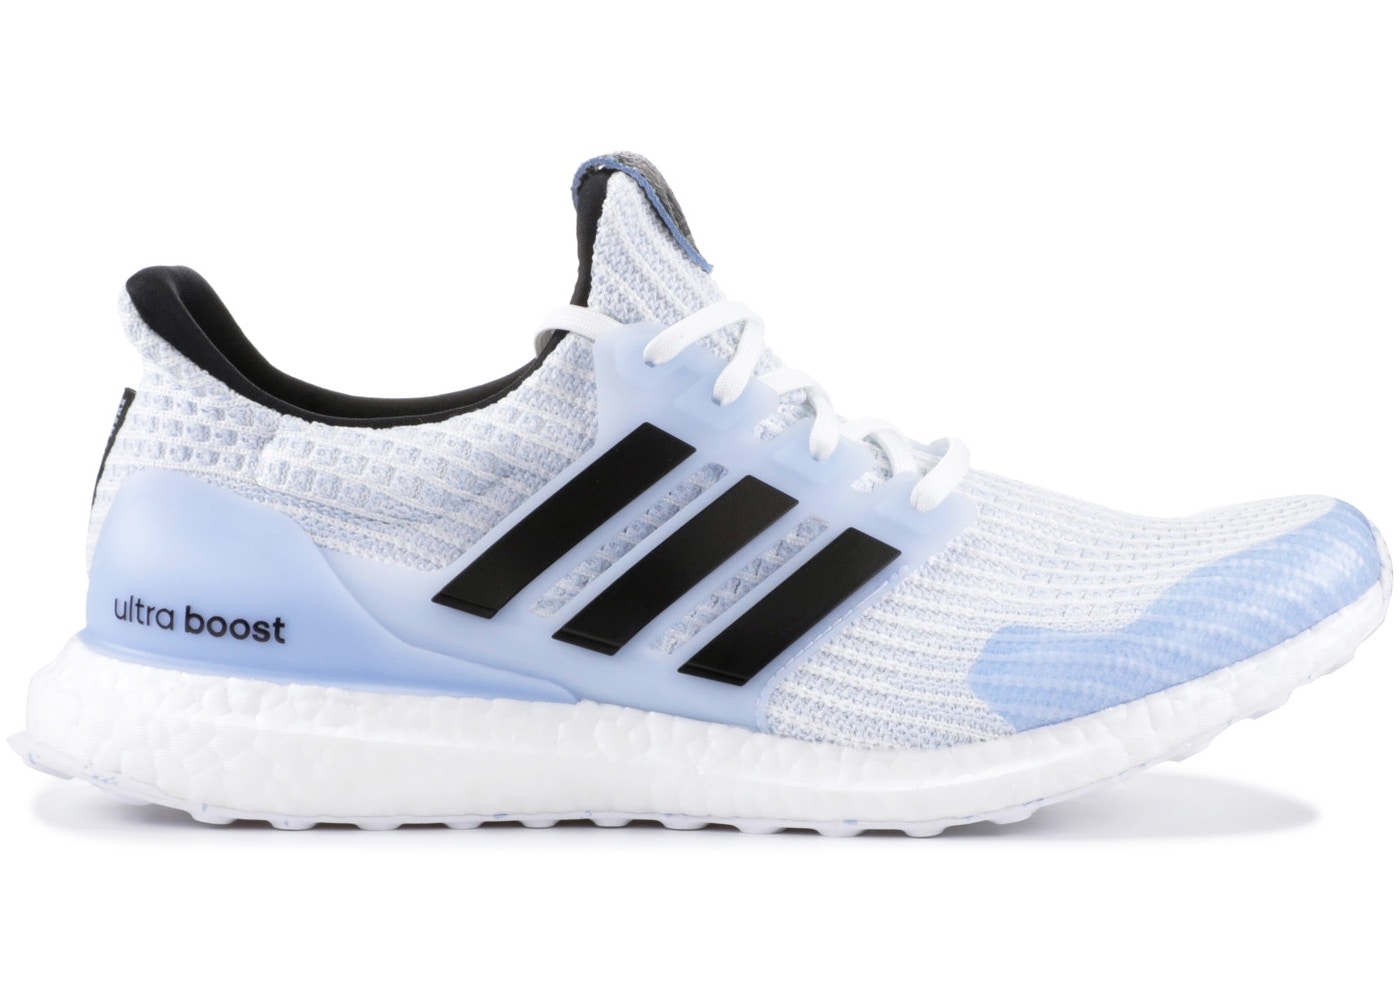 a8bc1472d9720 adidas Ultra Boost 4.0 Game of Thrones White Walkers - EE3708